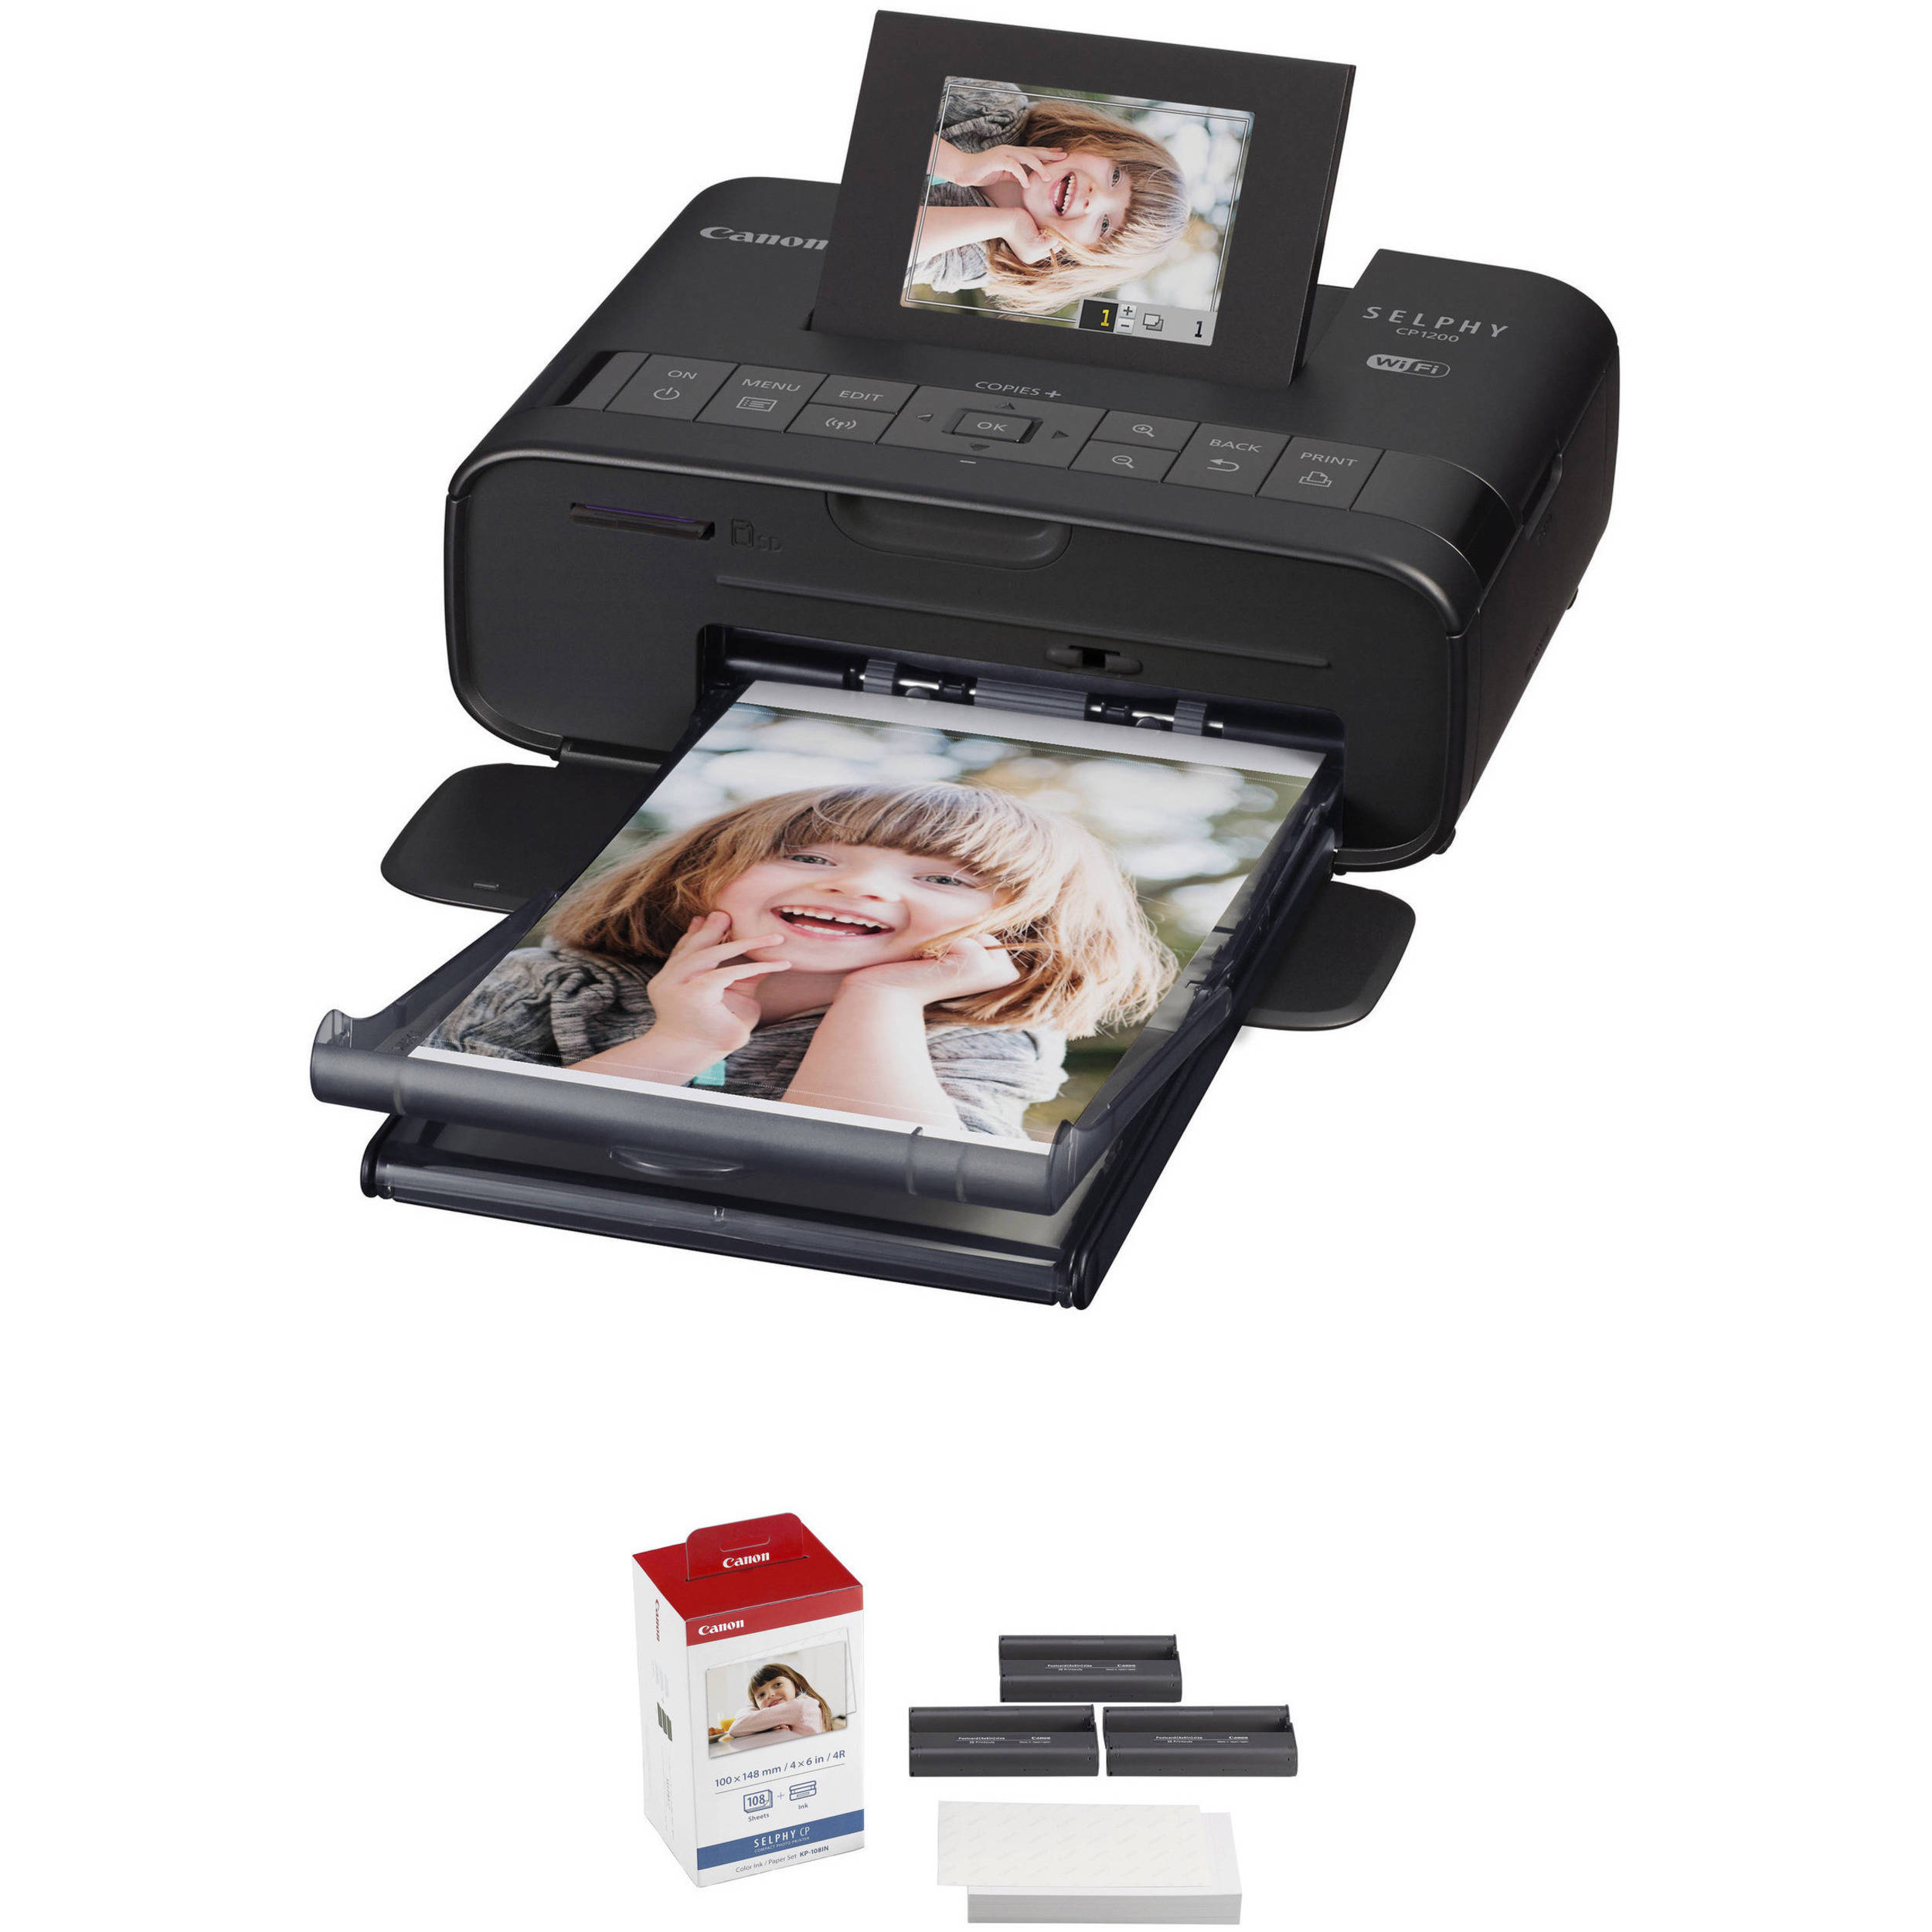 Canon SELPHY CP1200 Wireless Compact Photo Printer with KP-108IN Photo  Paper & Ink Kit (Black)